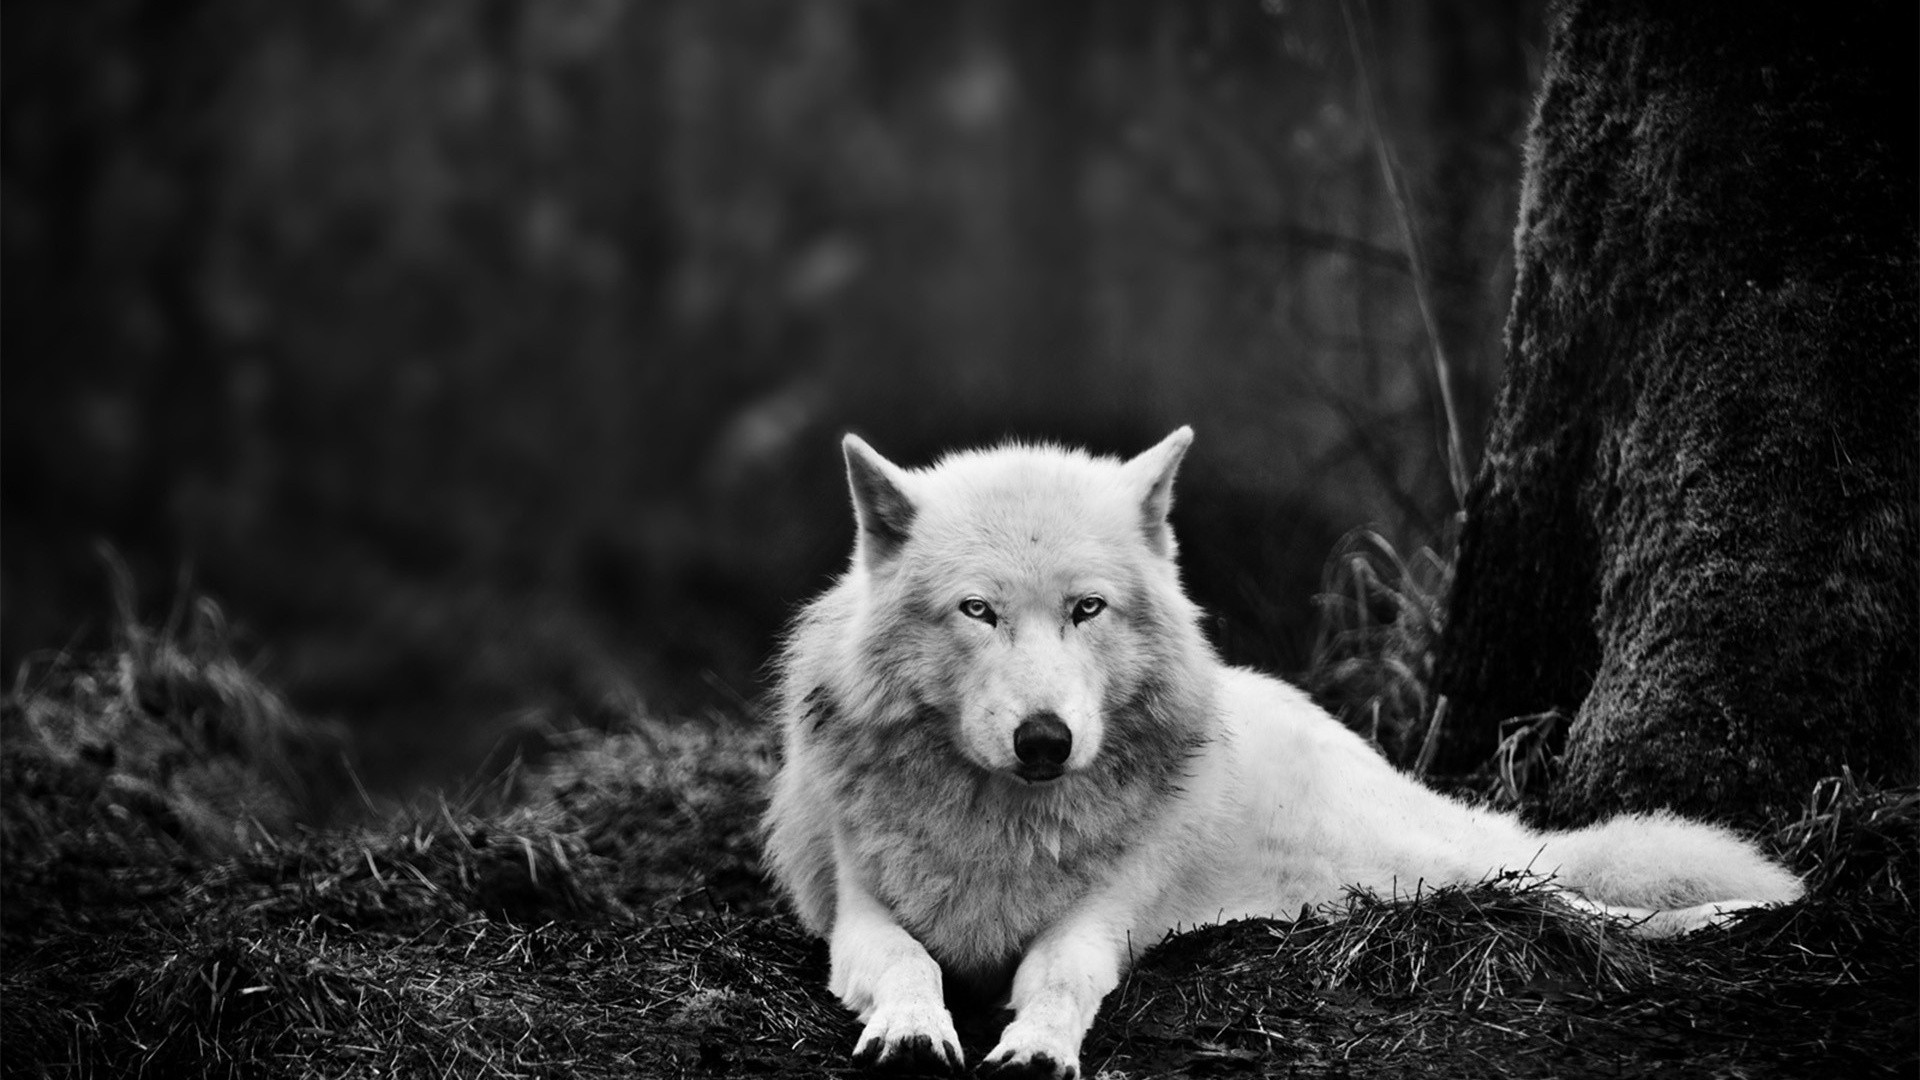 Hd wallpaper wolf - Download White Wolf Wolves Hd Wallpaper 2679 Full Size